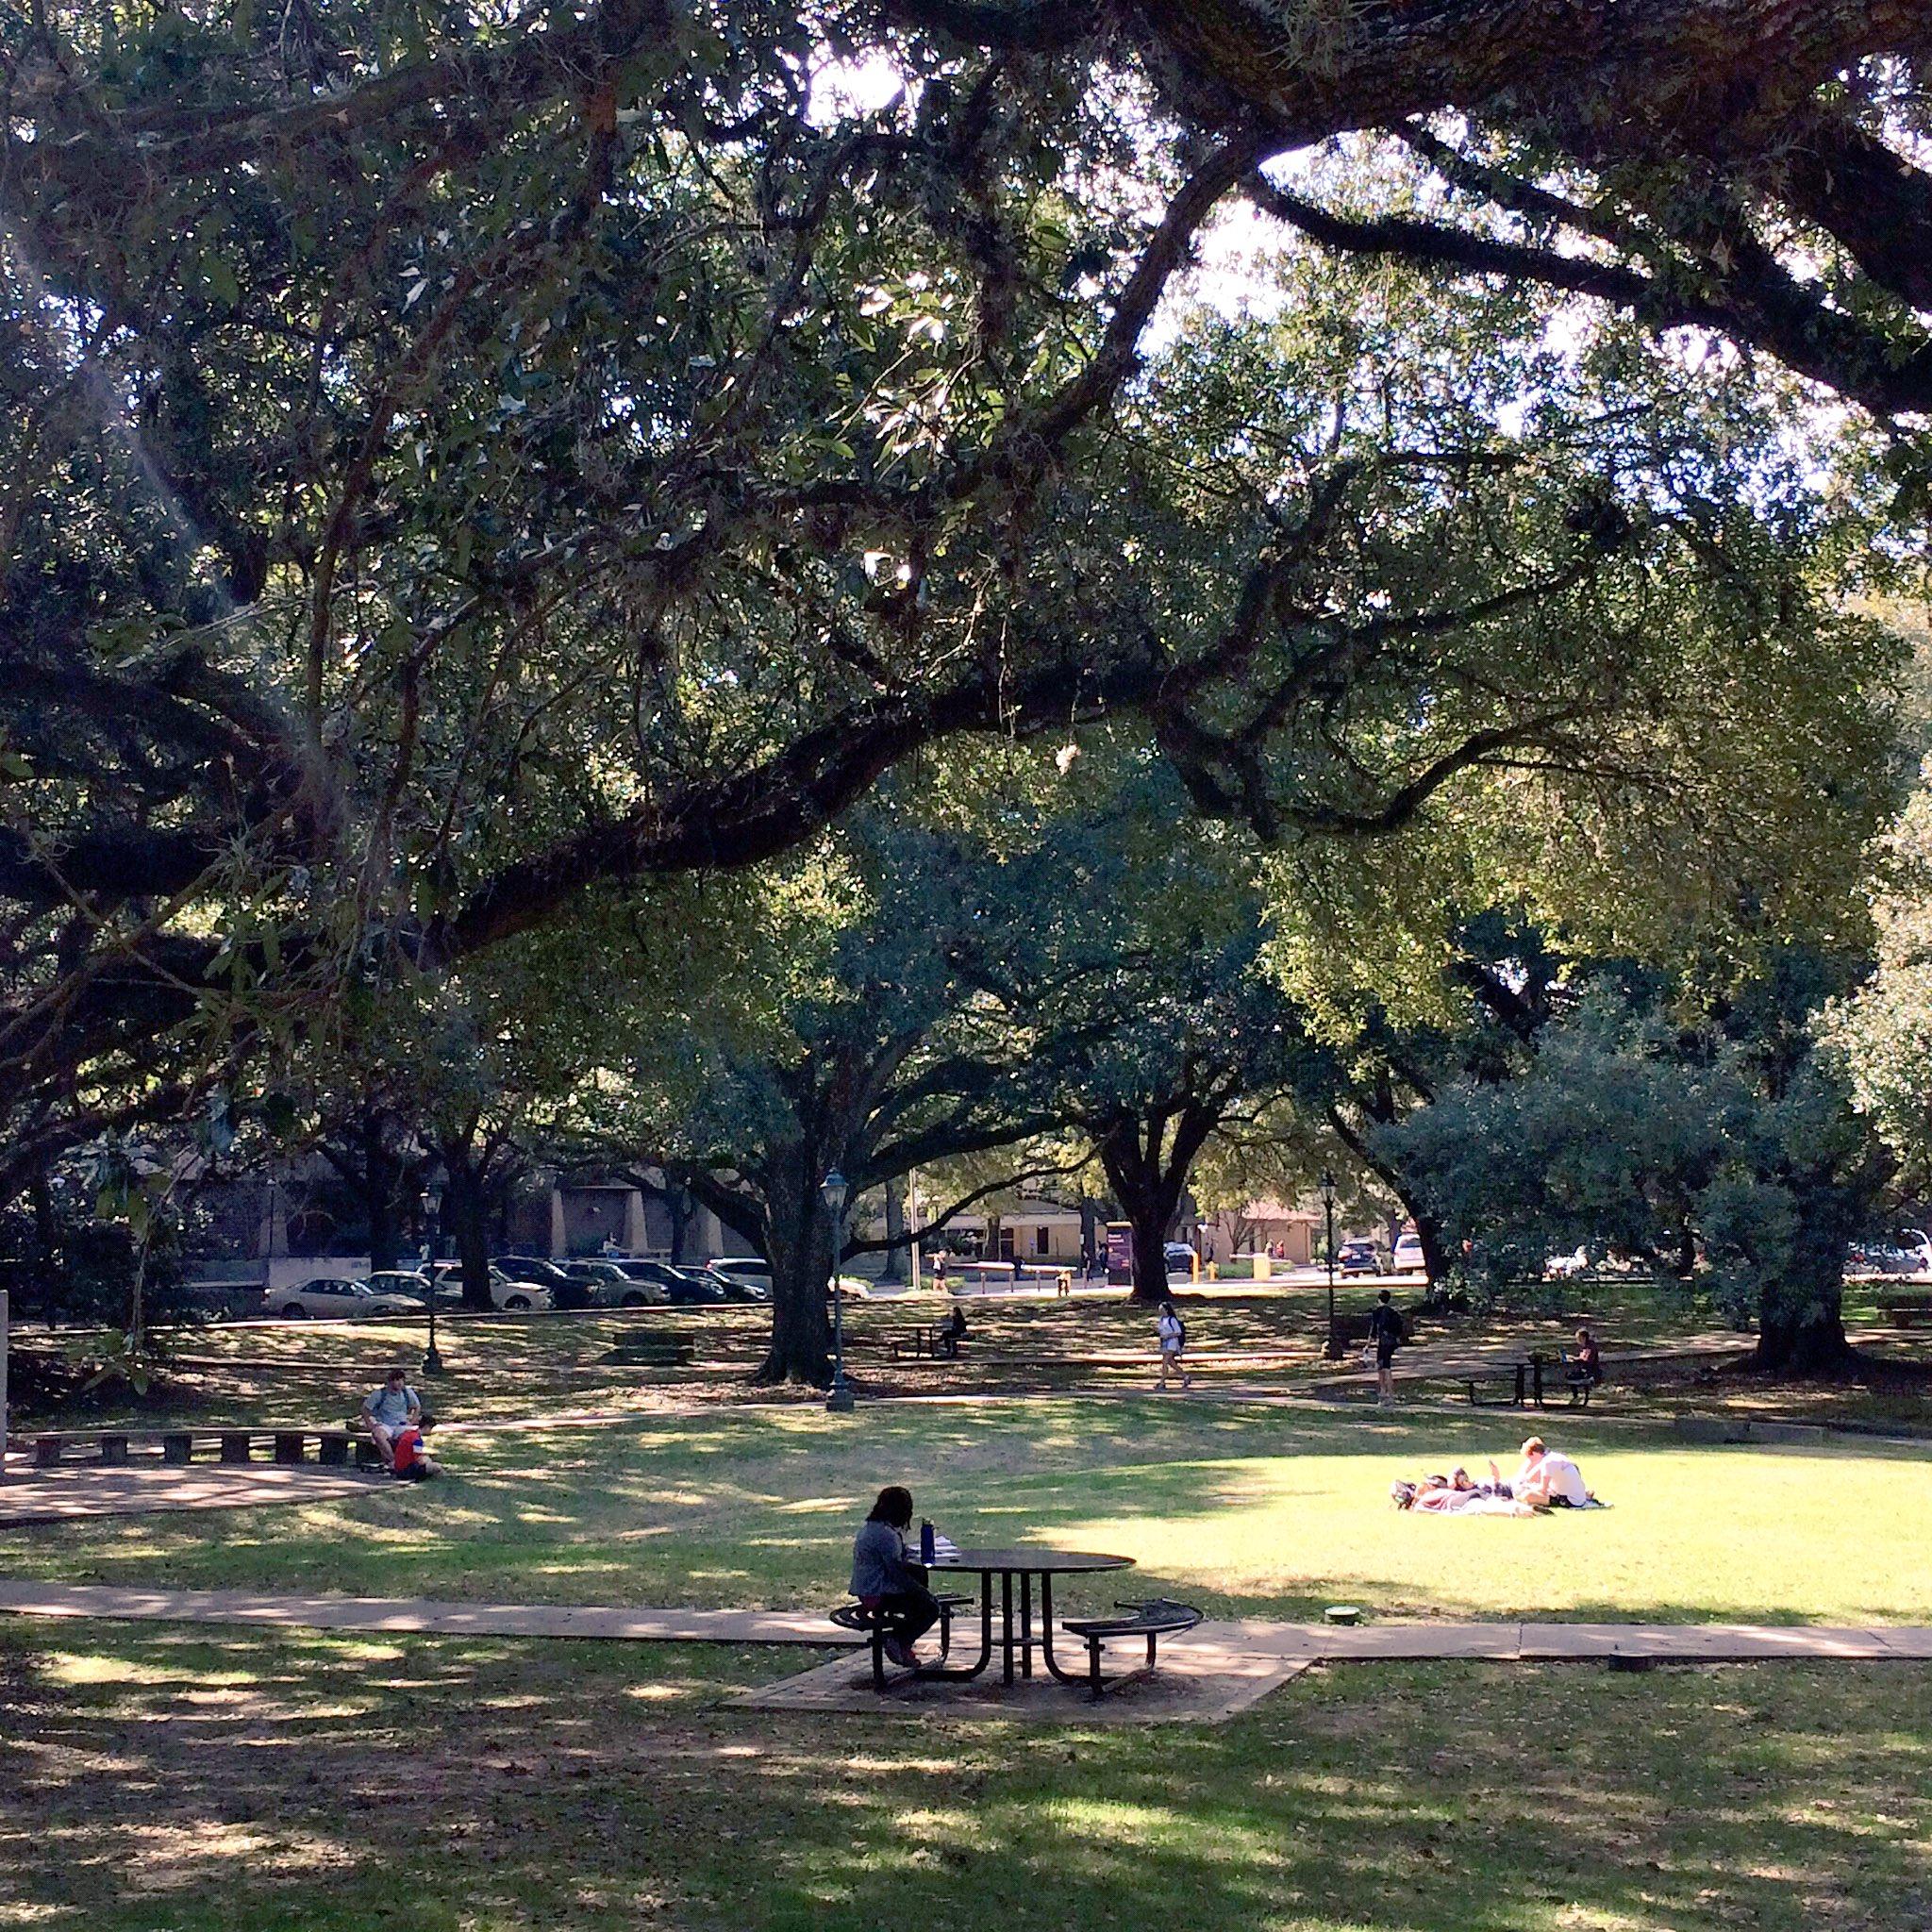 Monday's goal - spend as much time as possible outside. #myLSUhome https://t.co/0bR1aMAXAV